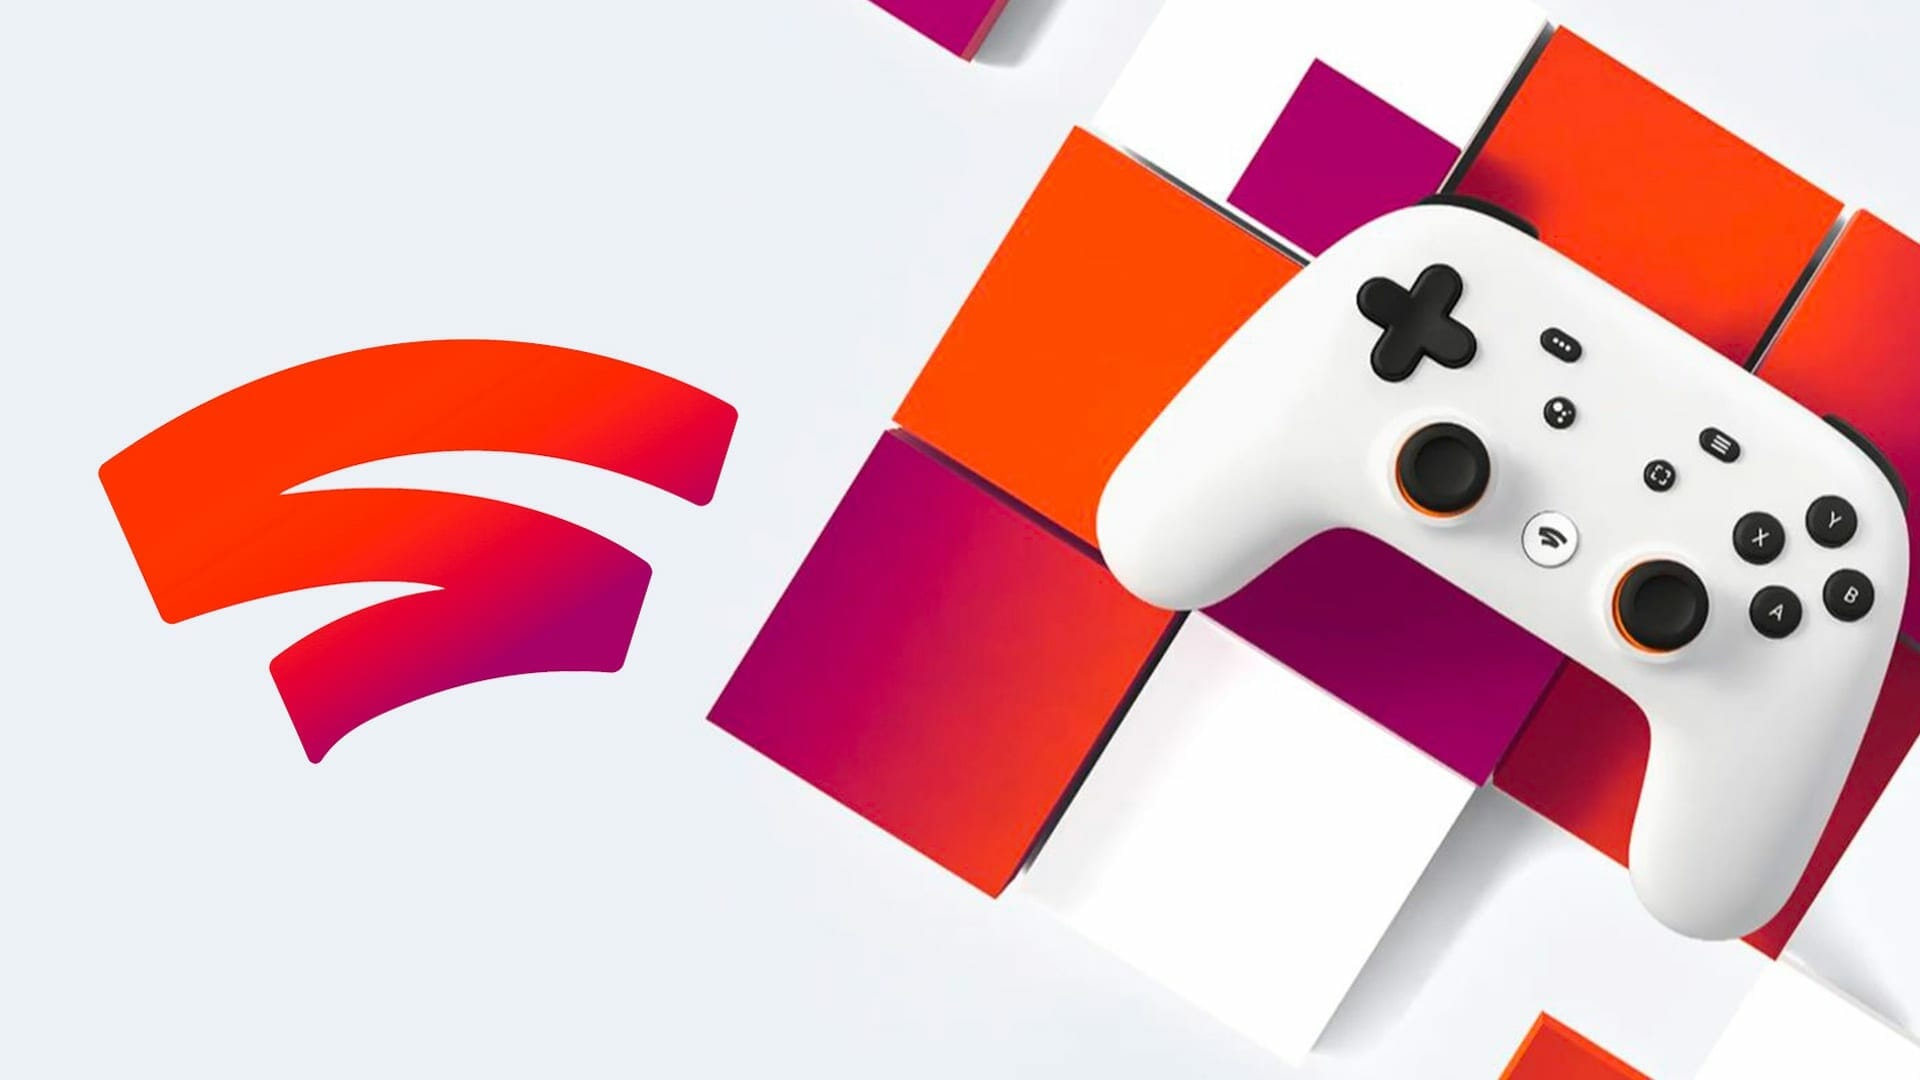 Google Stadia prices